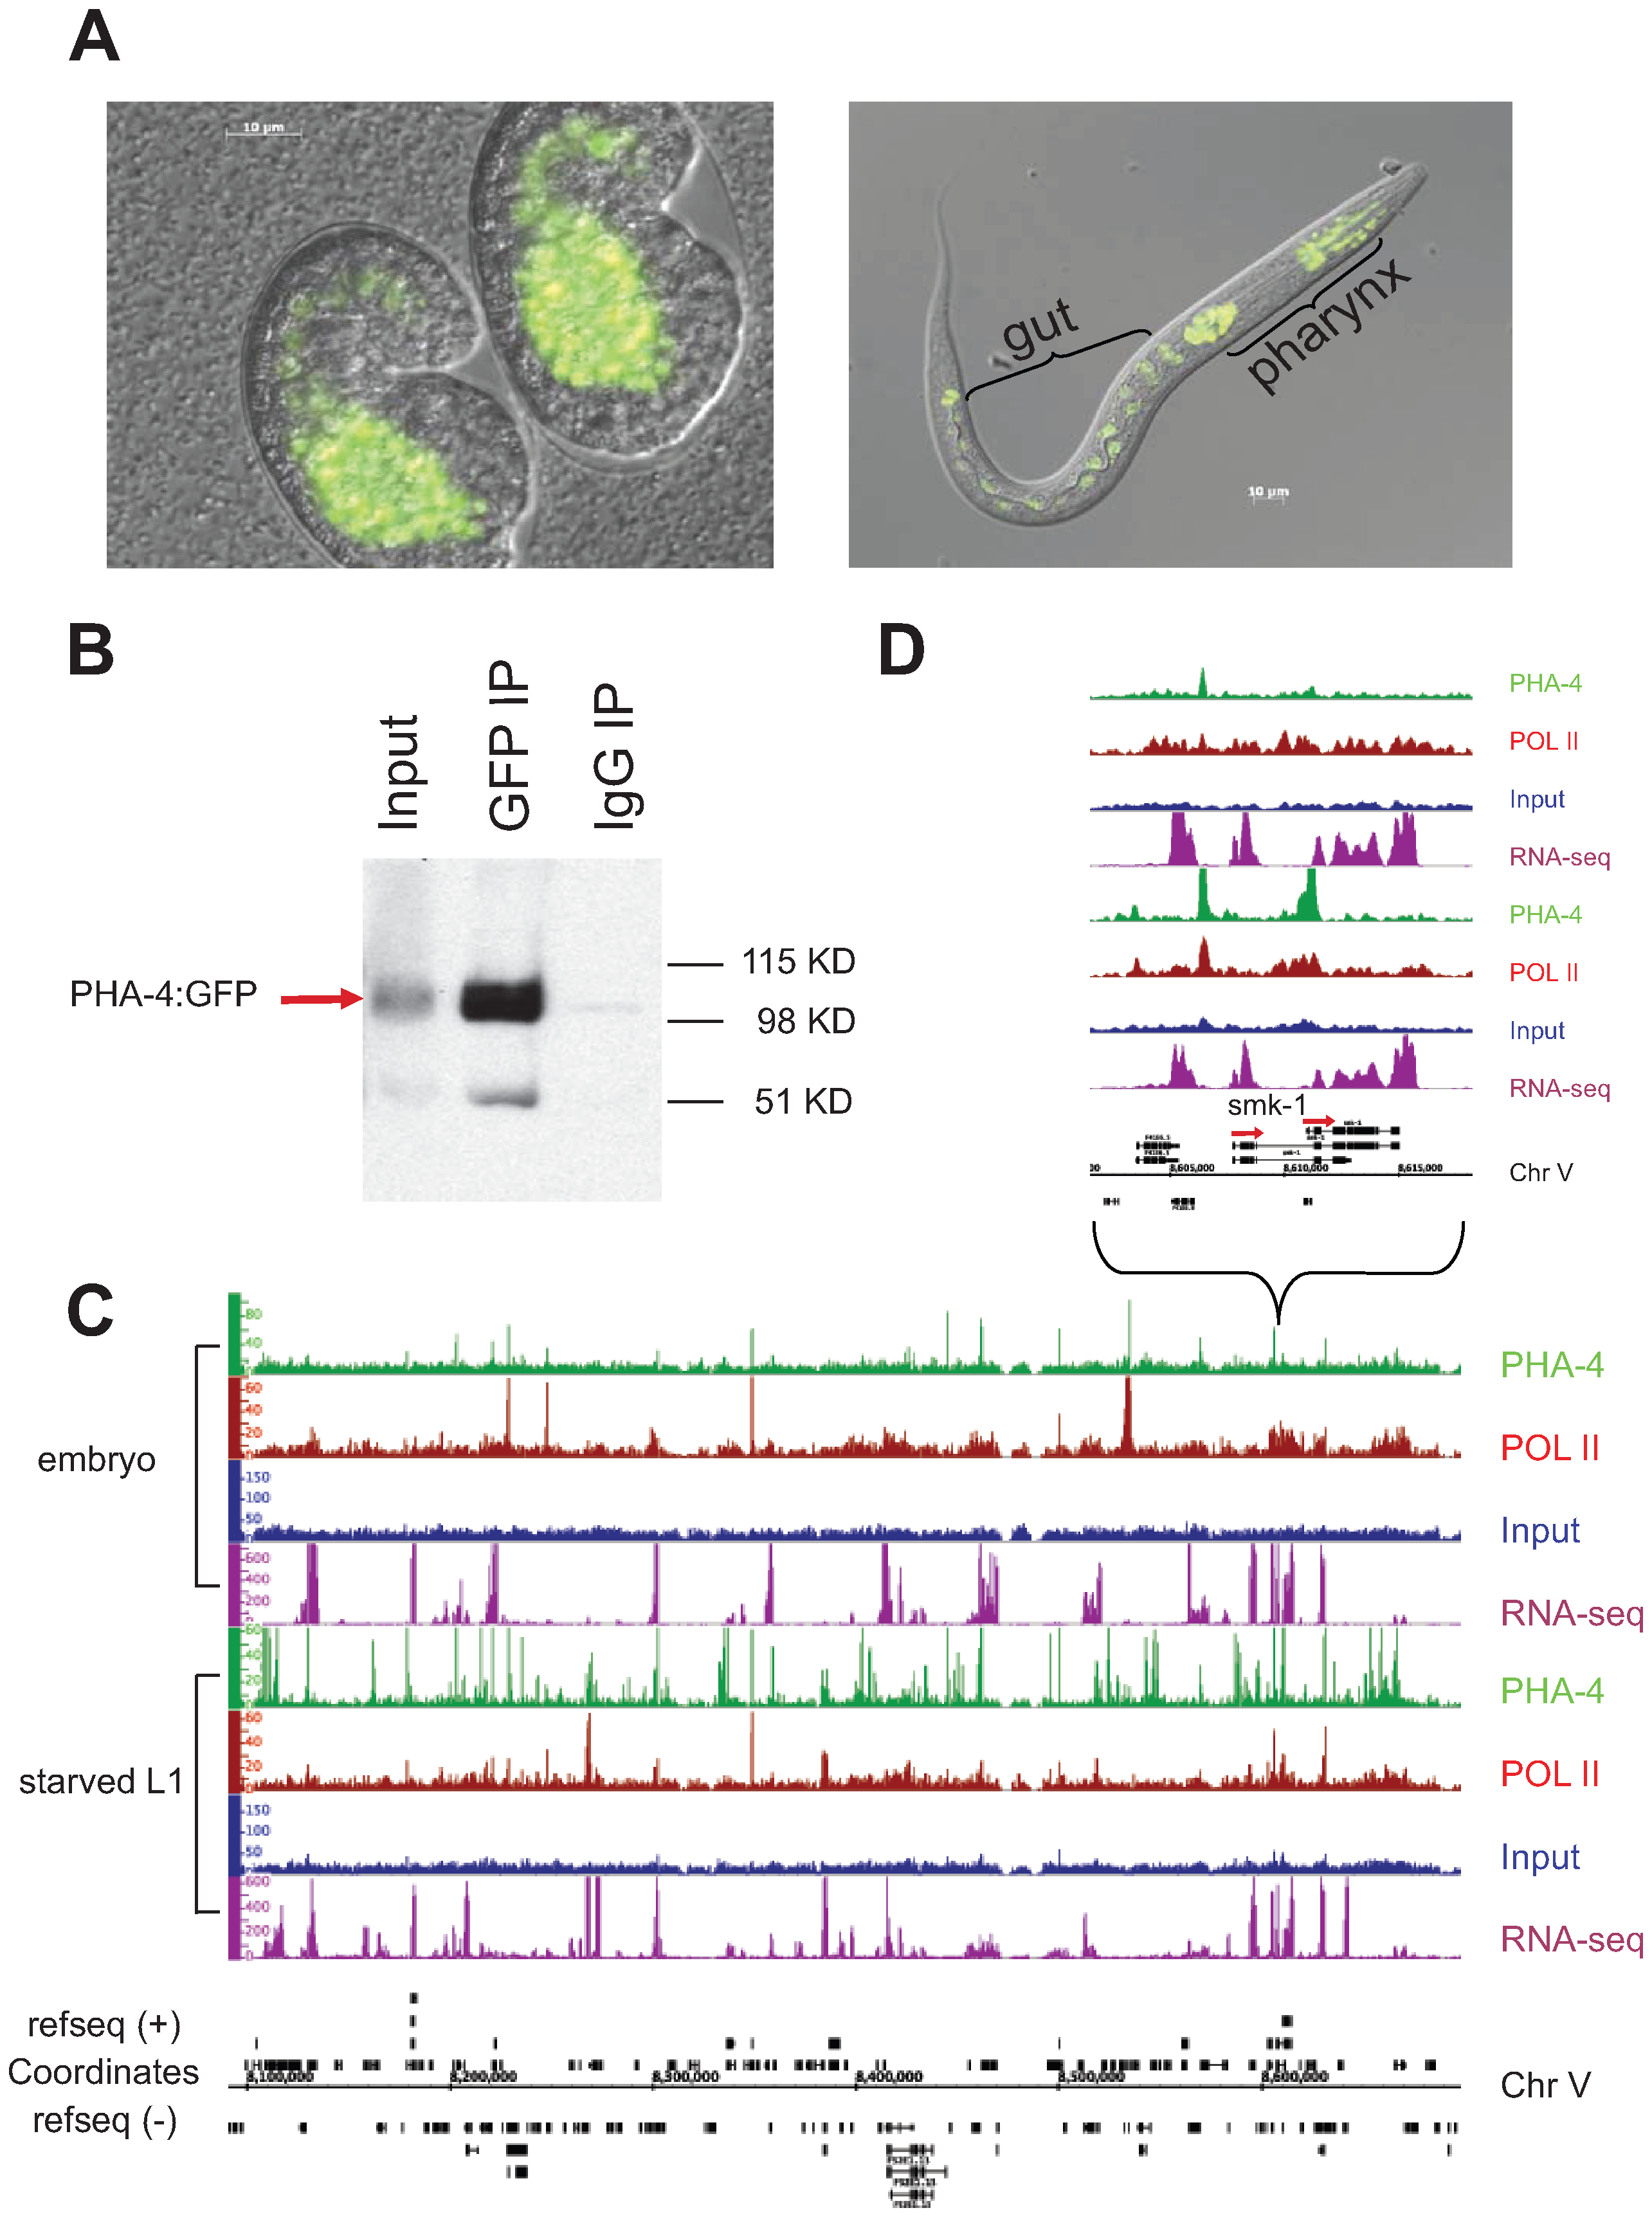 Identification of PHA-4 binding sites in embryos and starved L1 larvae.